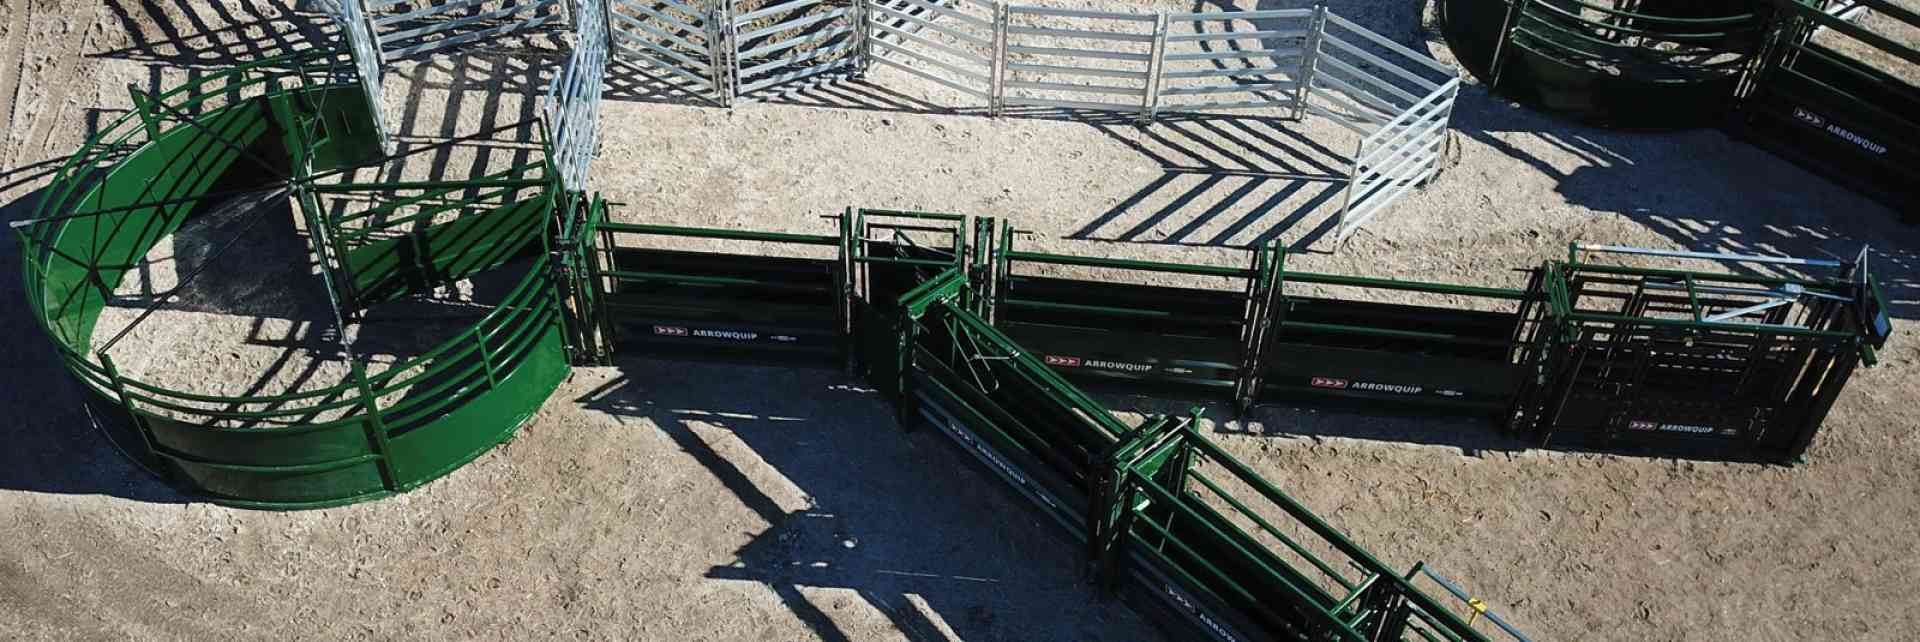 Cattle Working System Examples | Arrowquip Cattle Equipment